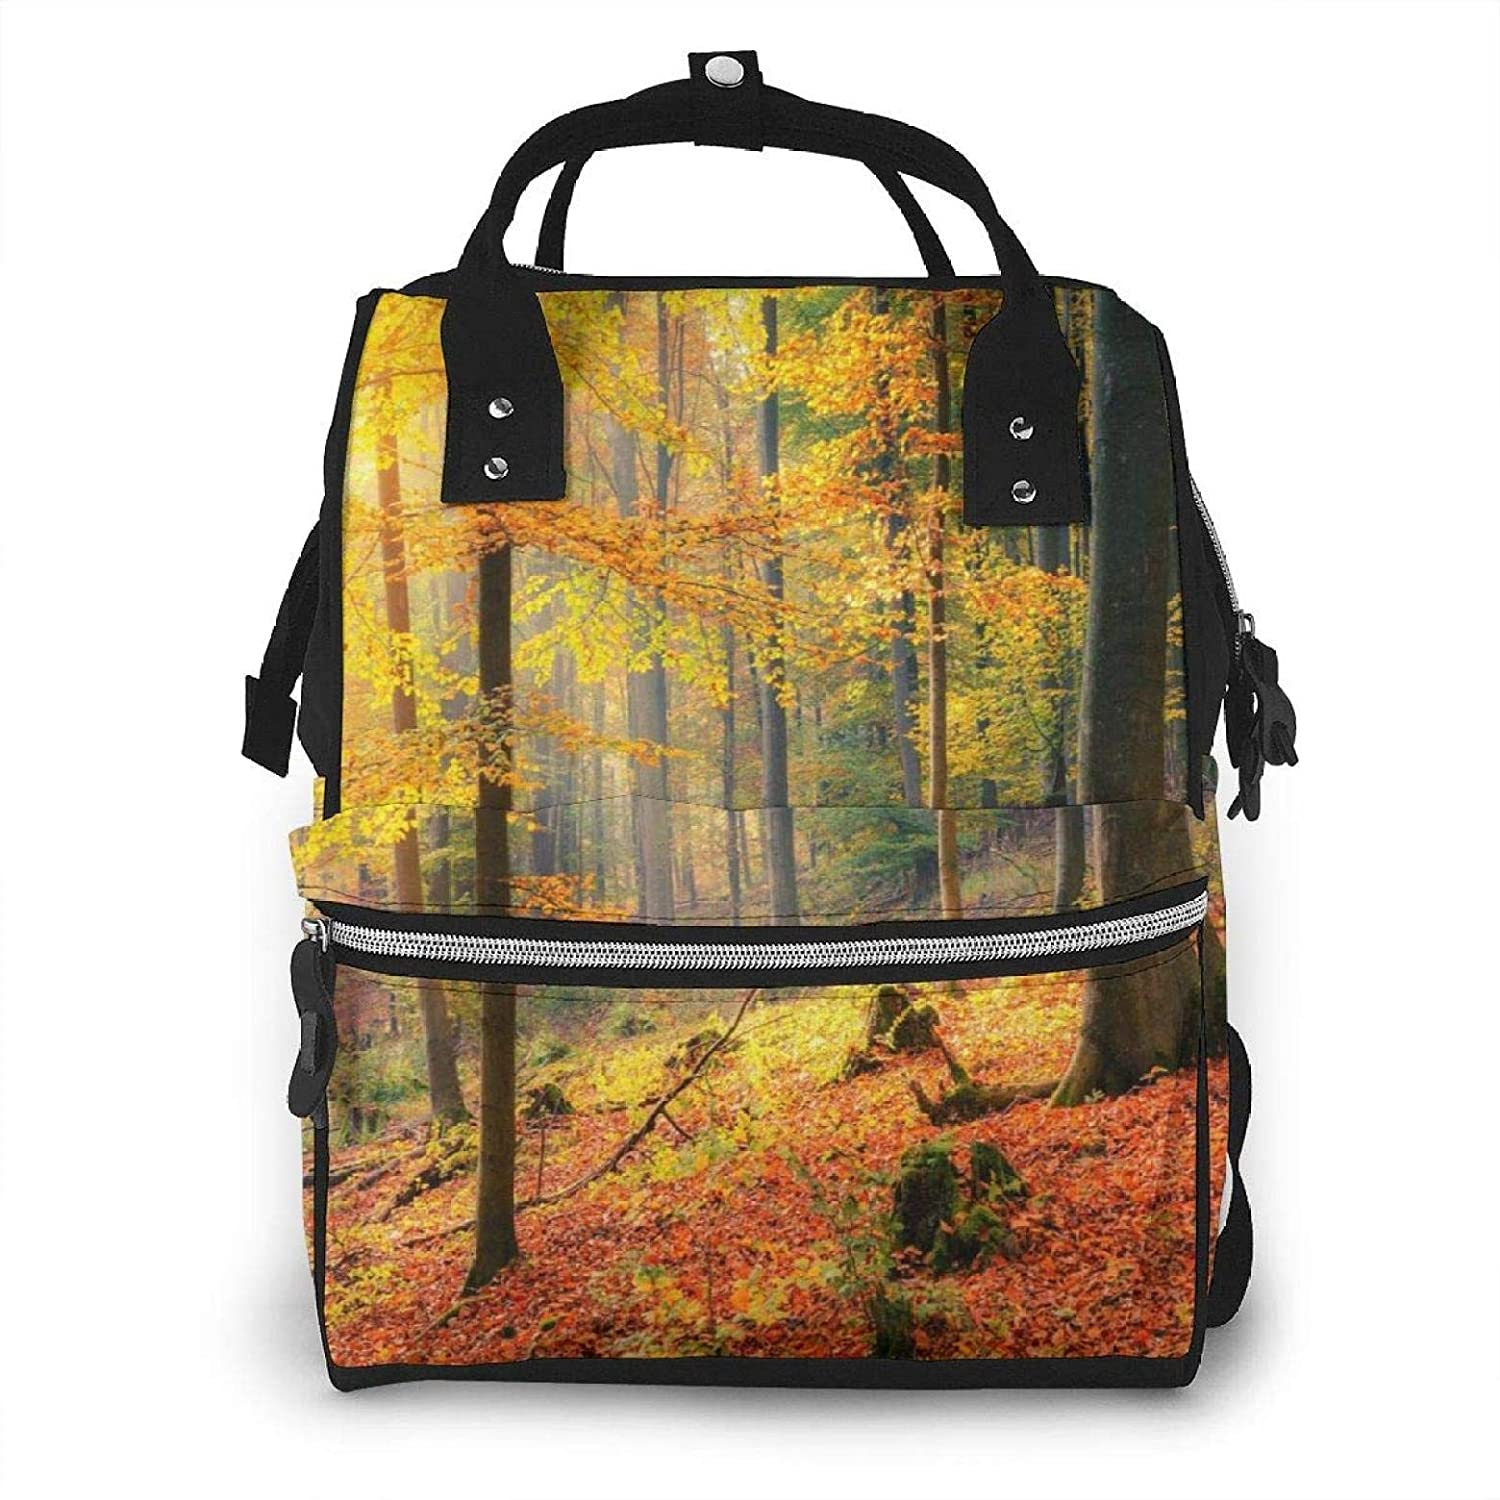 Autumn Forest Trees and Leaves Baby Diaper Bag Nappy Backpack Travel Shoulder Bag Large Capacity for Mommy Daddy